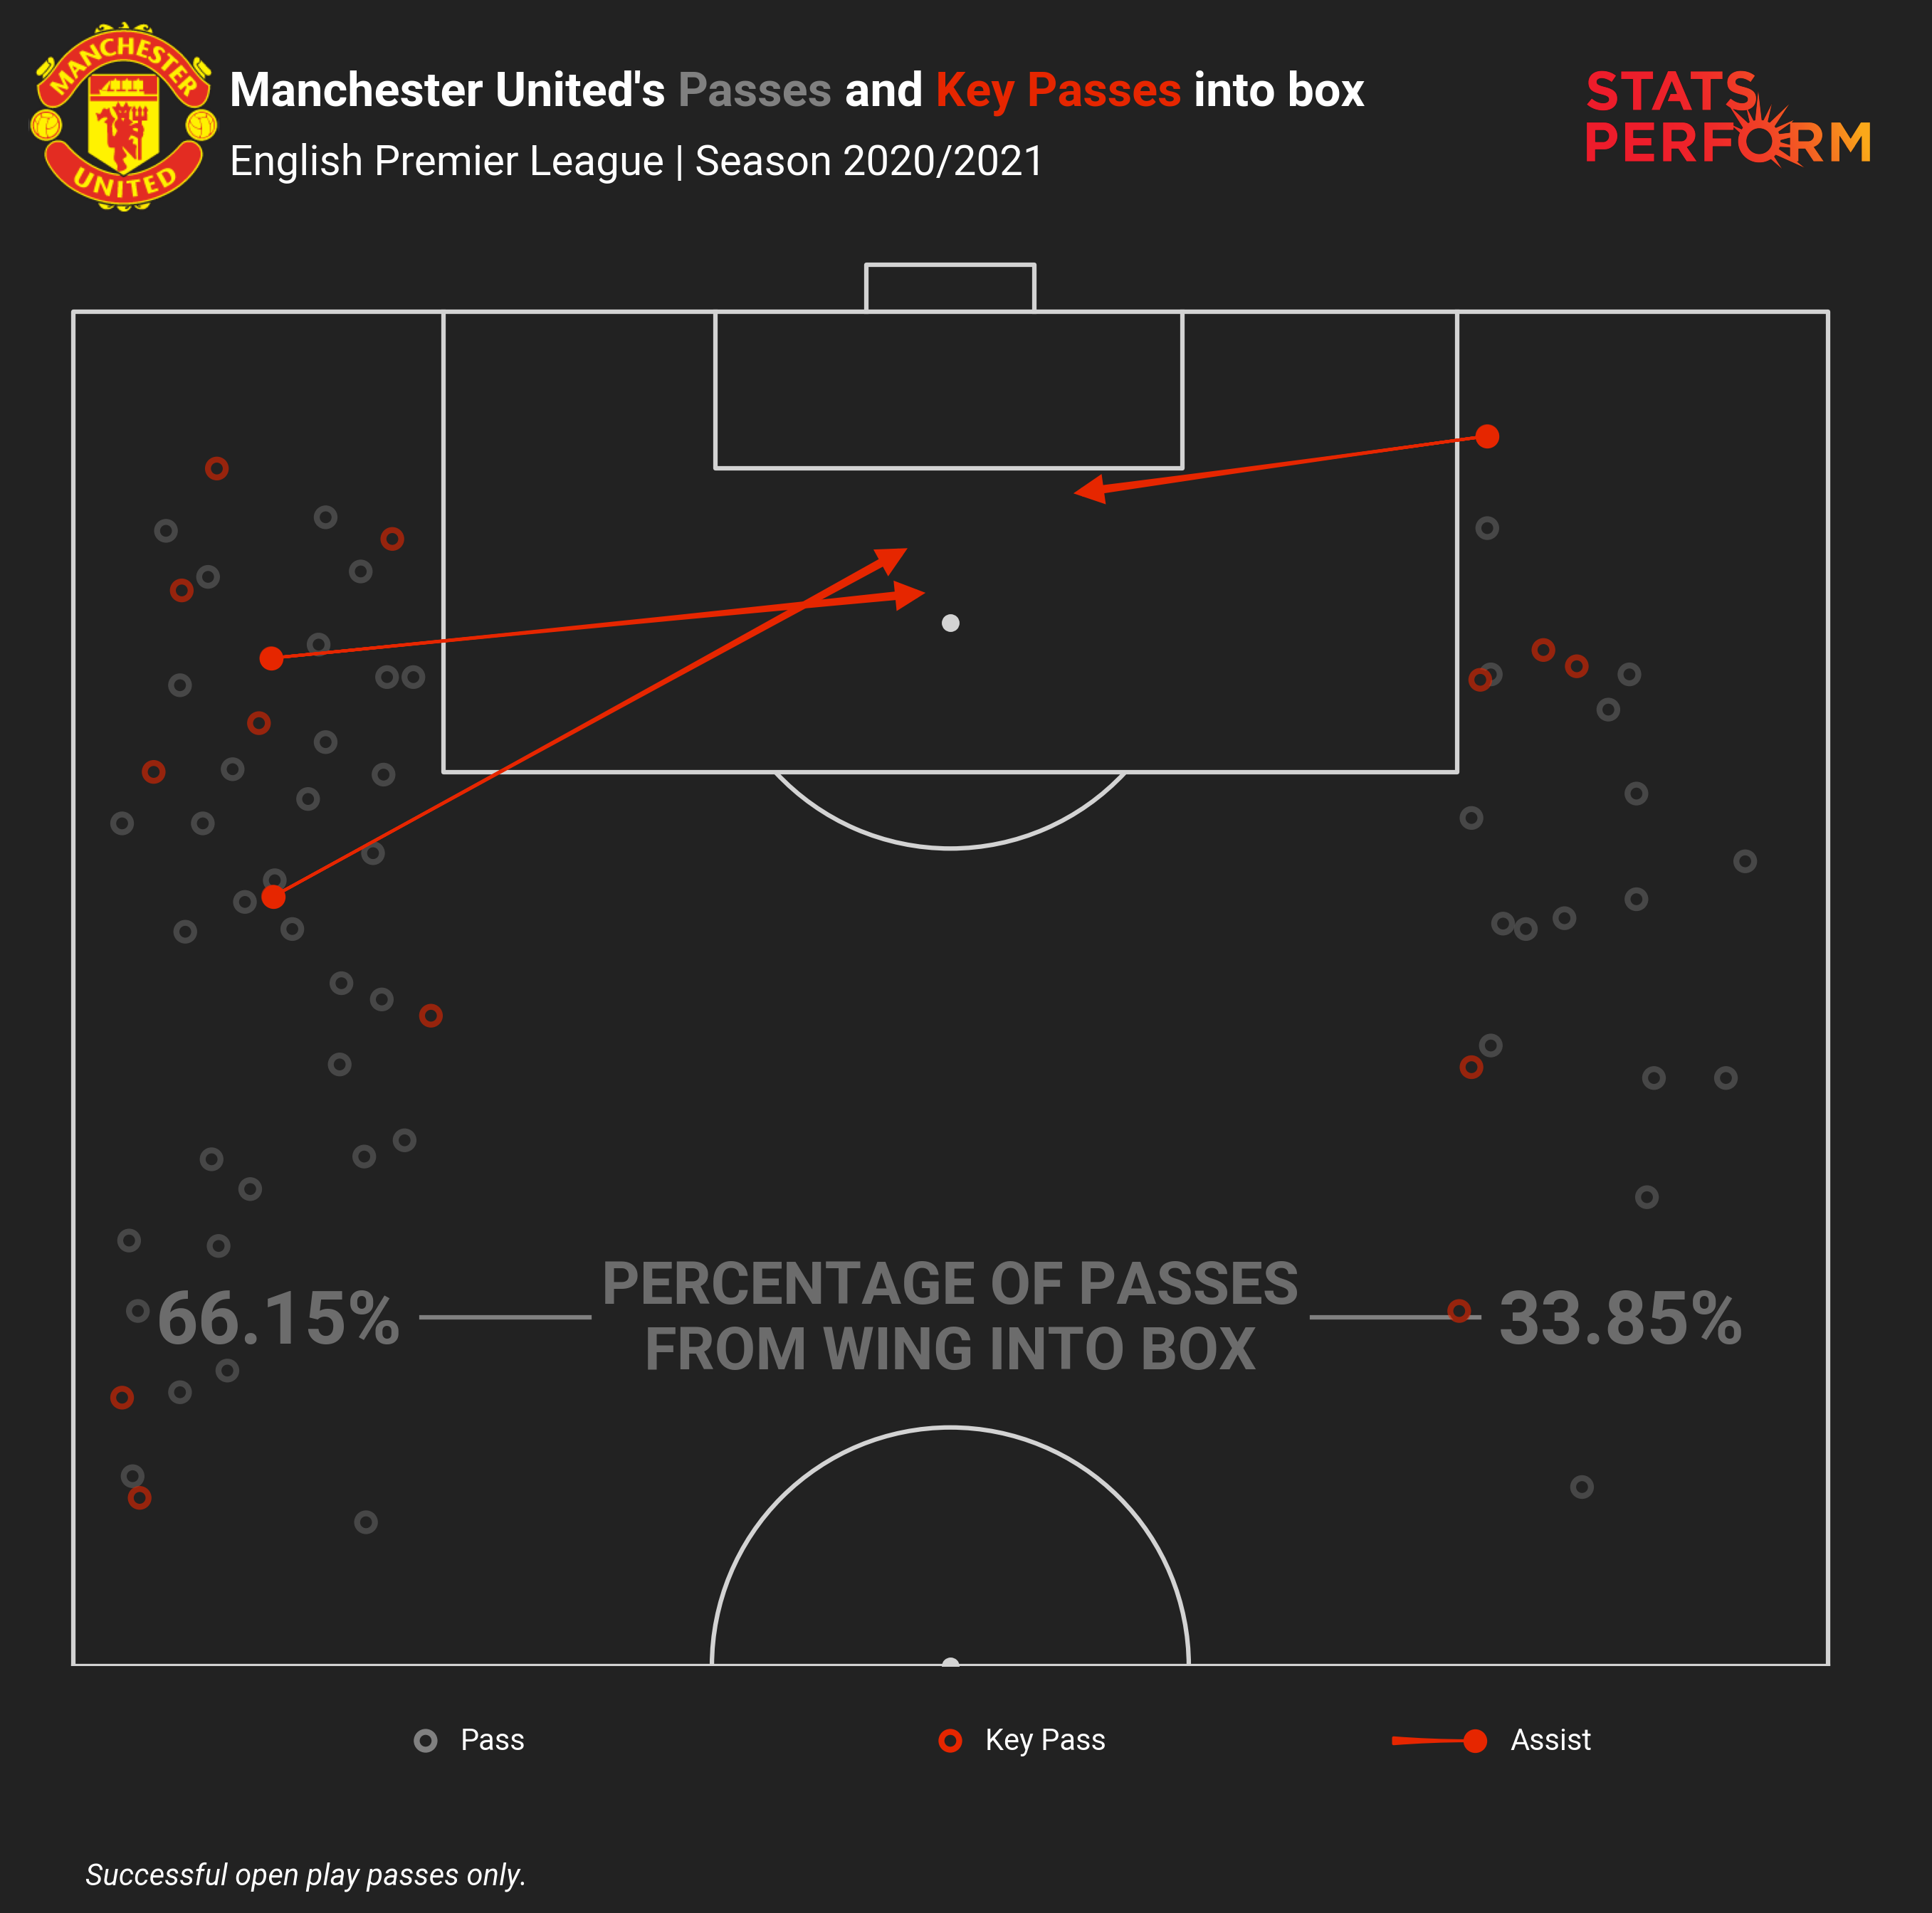 Manchester United attack twice as frequently from the left as they do down the right